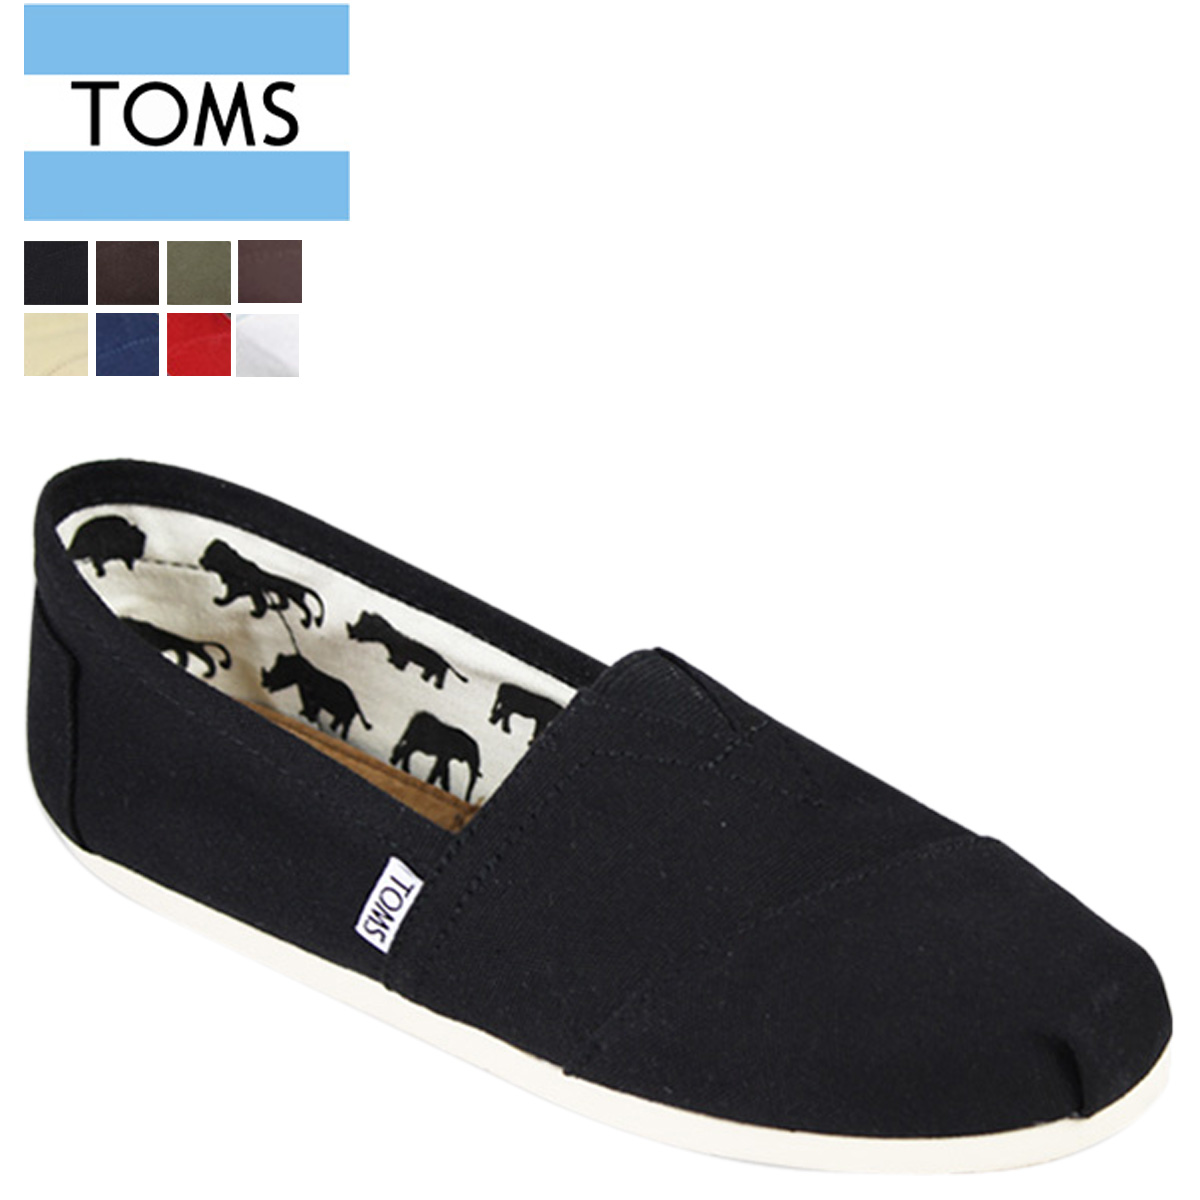 11681da5552 □A brand name: (Thoms shoes) TOMS SHOES □A brand name: CANVAS MEN'S  CLASSICS □A country of origin: CHINA □A comparative price: Brand official  site ...